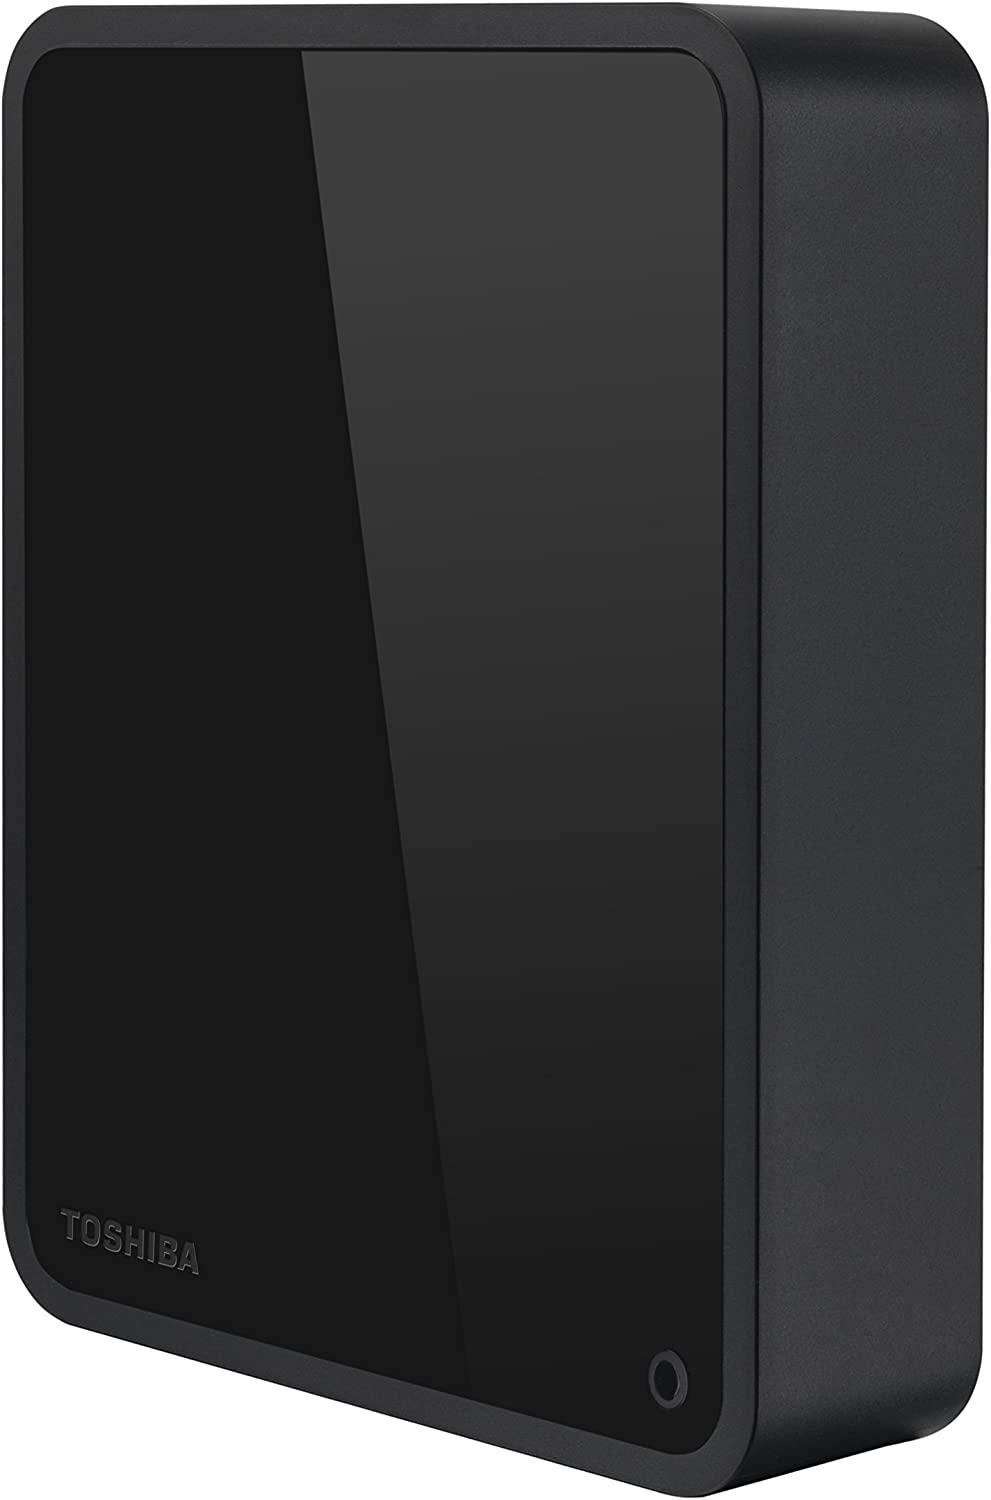 Toshiba 4TB Canvio for Desktop 7200 RPM External Hard Drive, USB 3.0 (HDWC340XK3JA),black